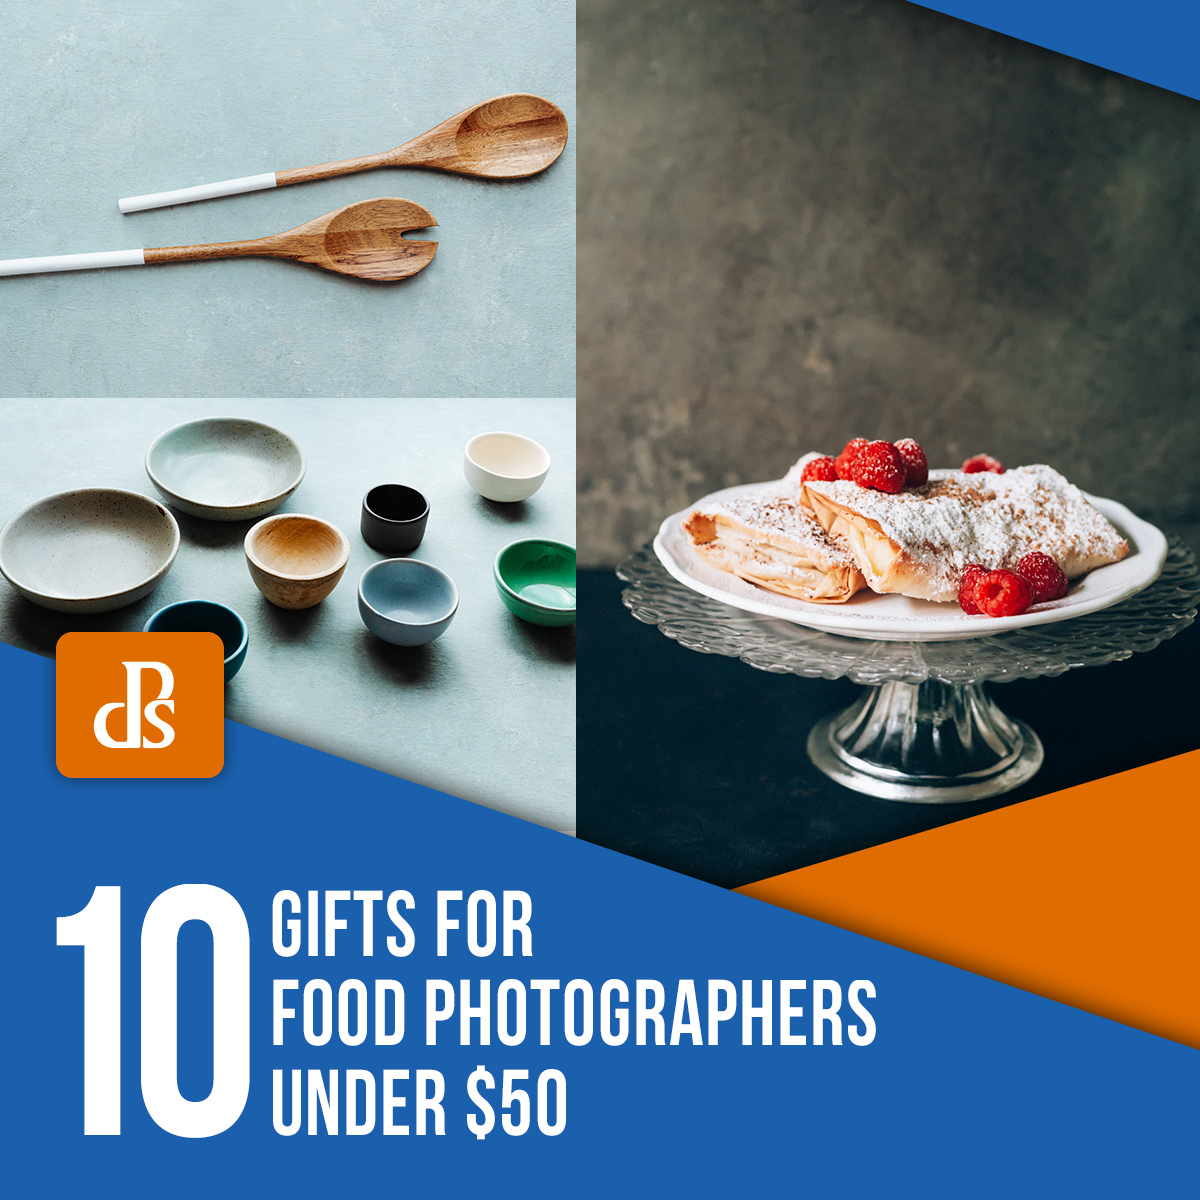 10 Great Gifts for Food Photographers Under $50